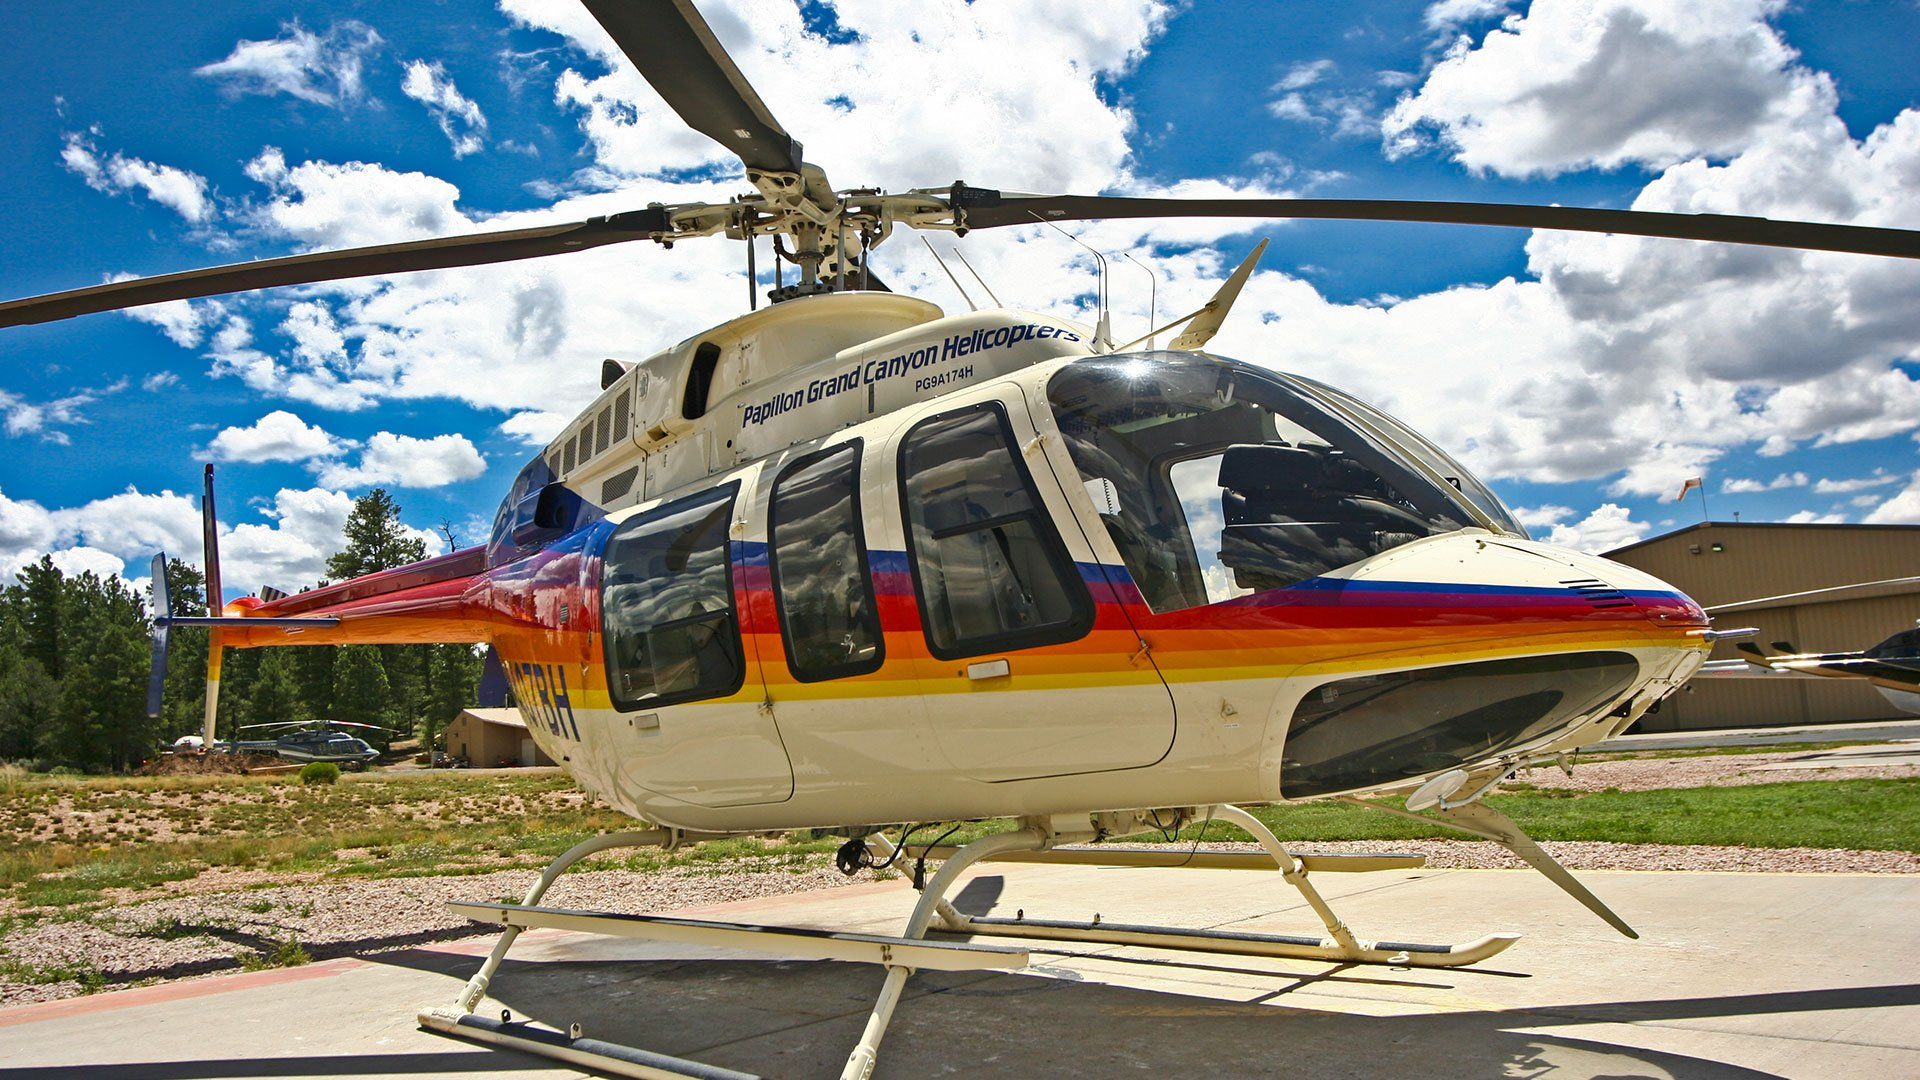 Bell helicopter landed on the airport tarmac in Grand Grand National Park